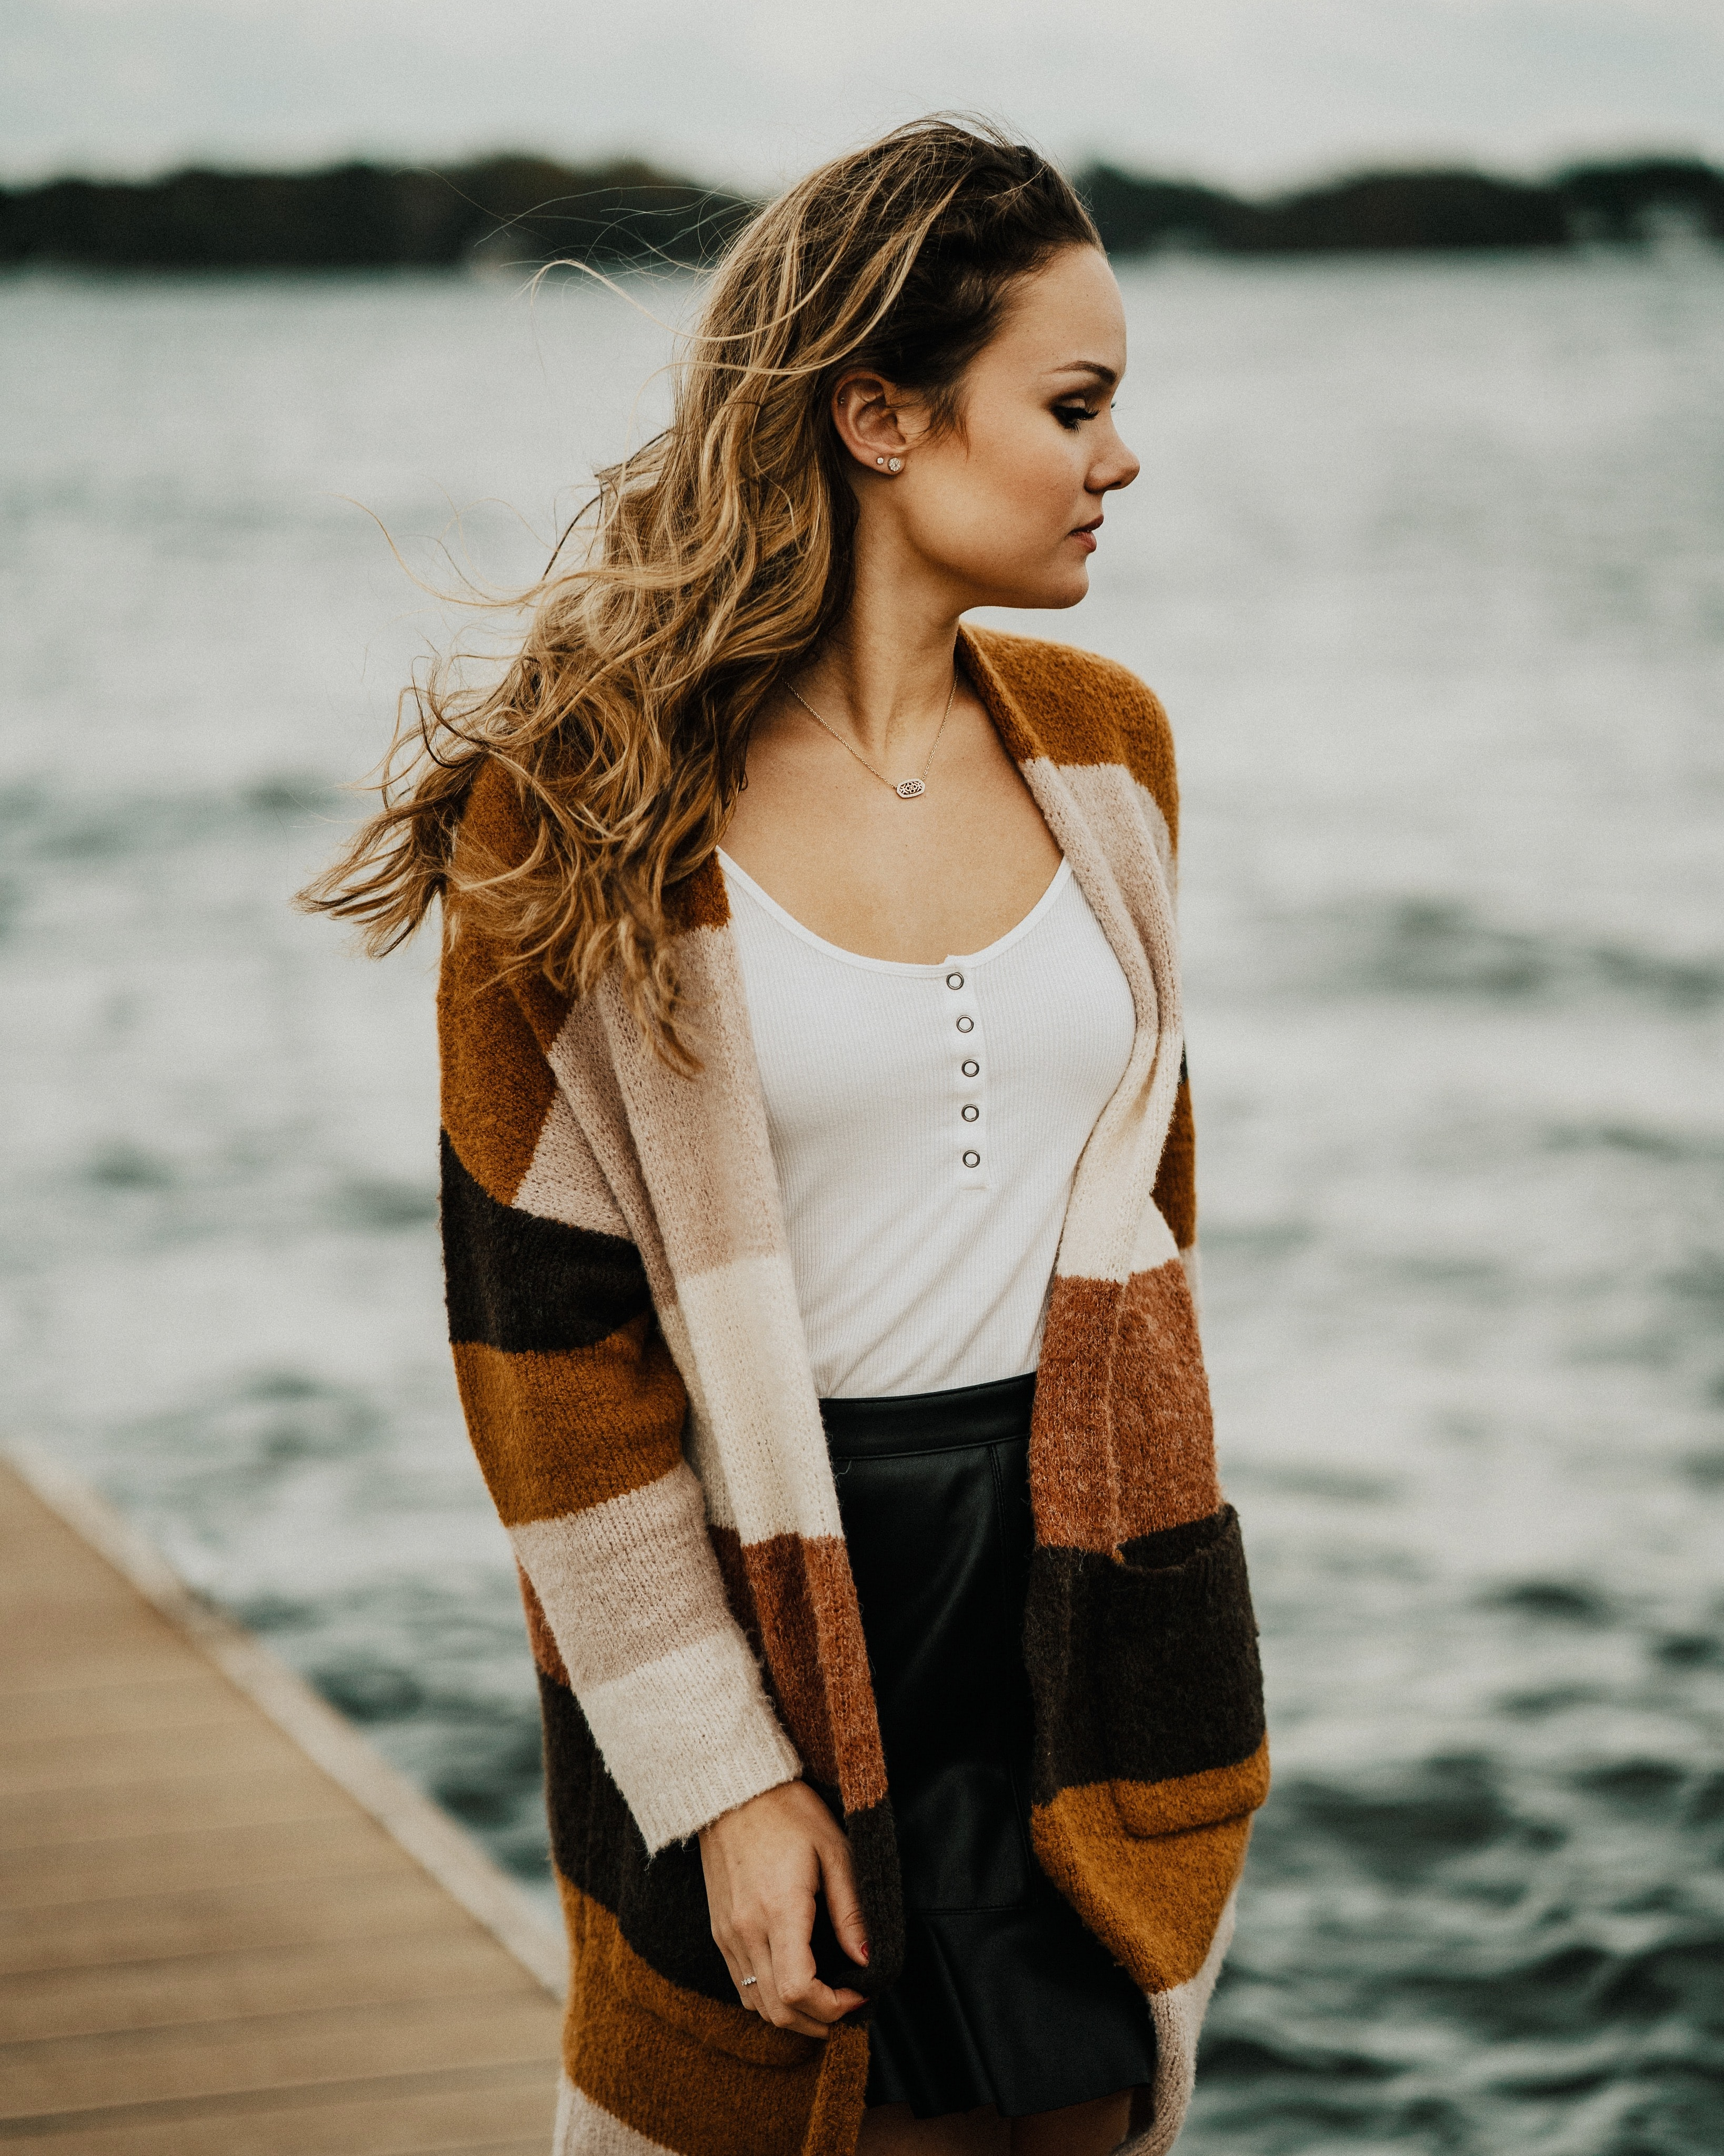 woman wearing brown, black, and white coat on dock